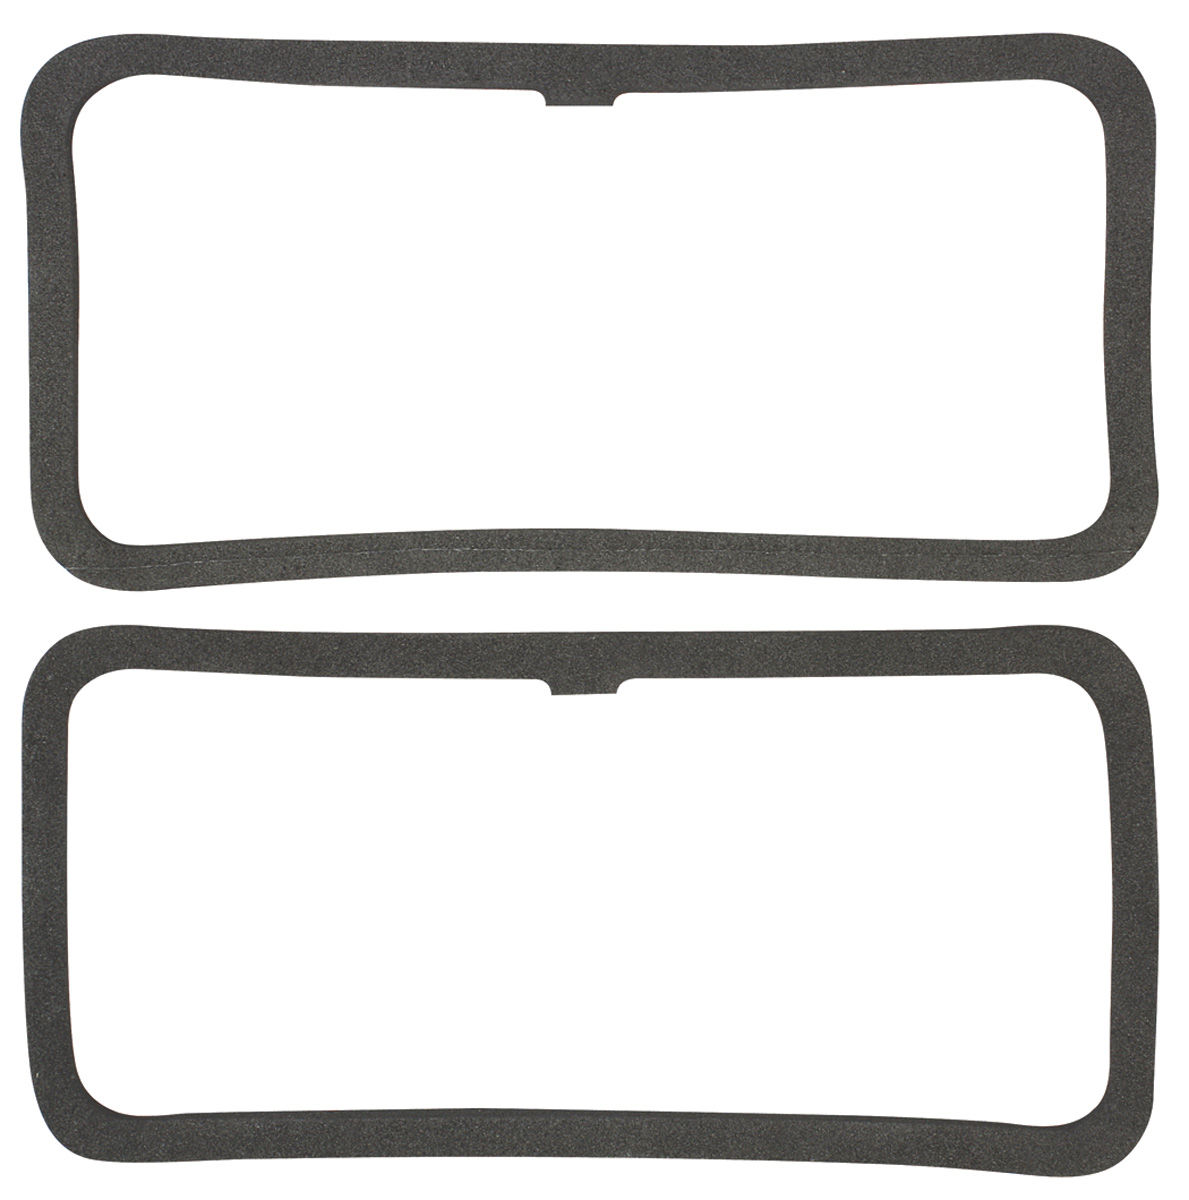 70 CHEVELLE TAIL LAMP GASKETS